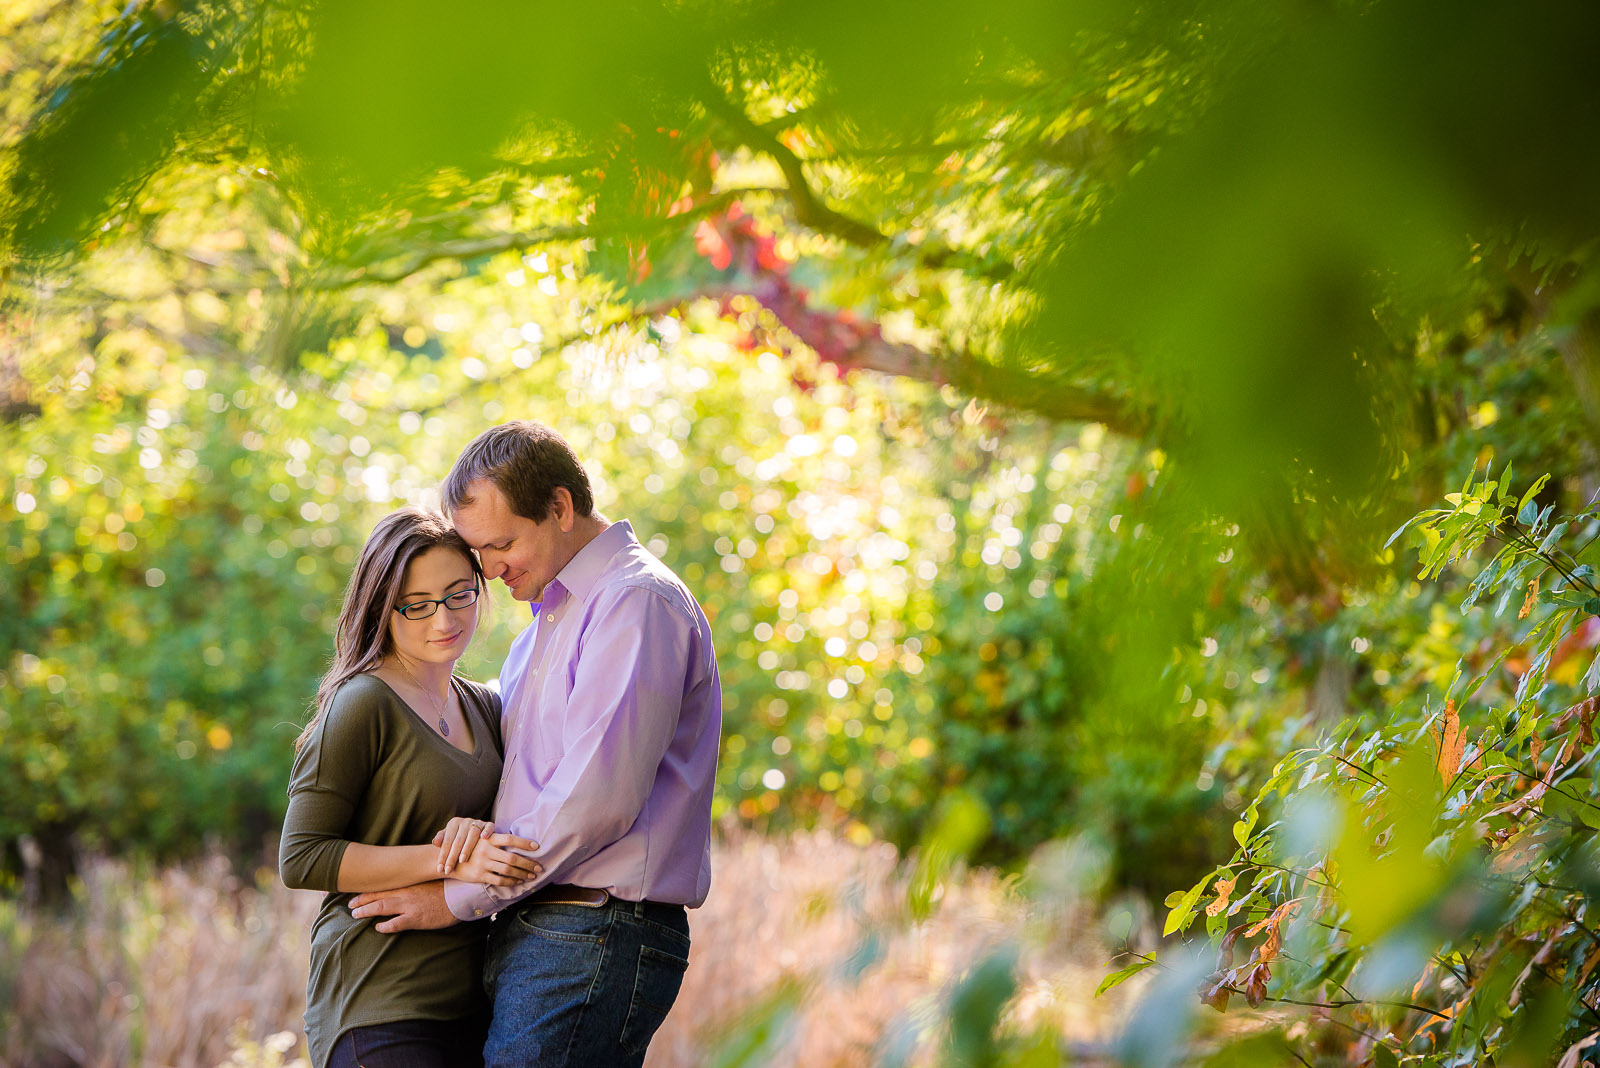 Eric_and_Christy_Photography_Blog_2017_Best_Engagement-5